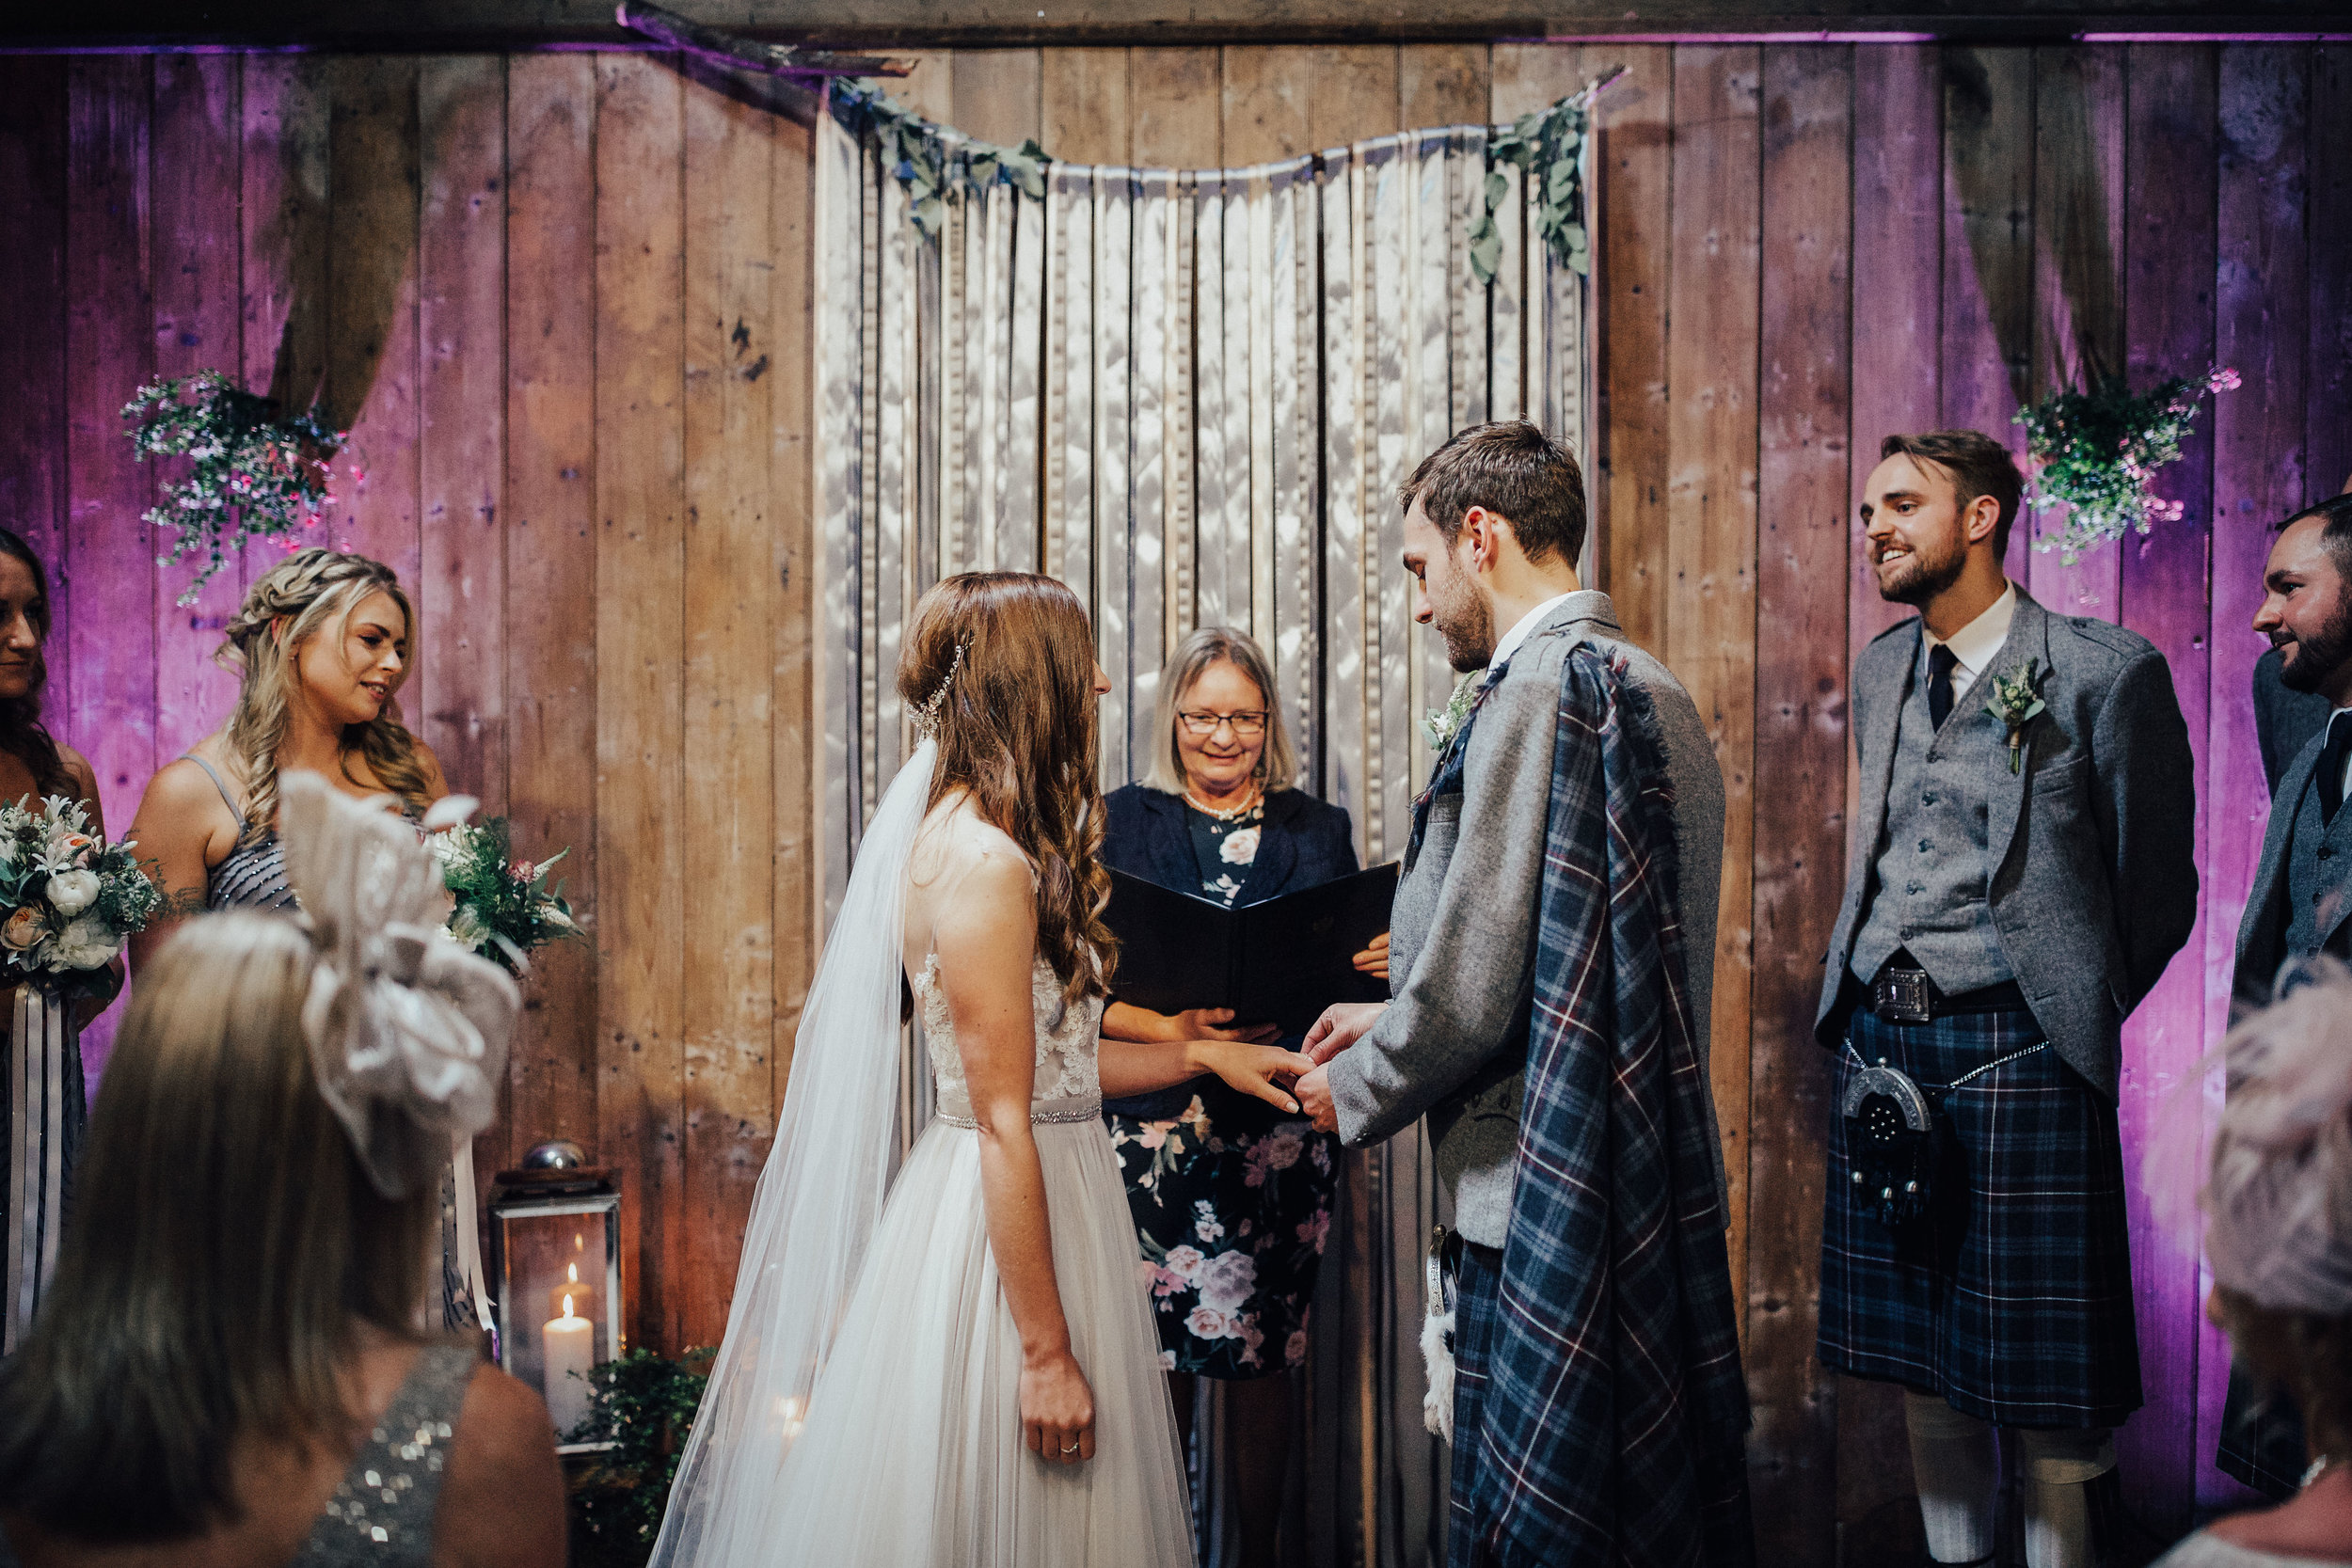 BYRE_AT_INCHYRA_WEDDING_PHOTOGRAPHER_PJ_PHILLIPS_PHOTOGRAPHY_KAYLEIGH_ANDREW_87.jpg